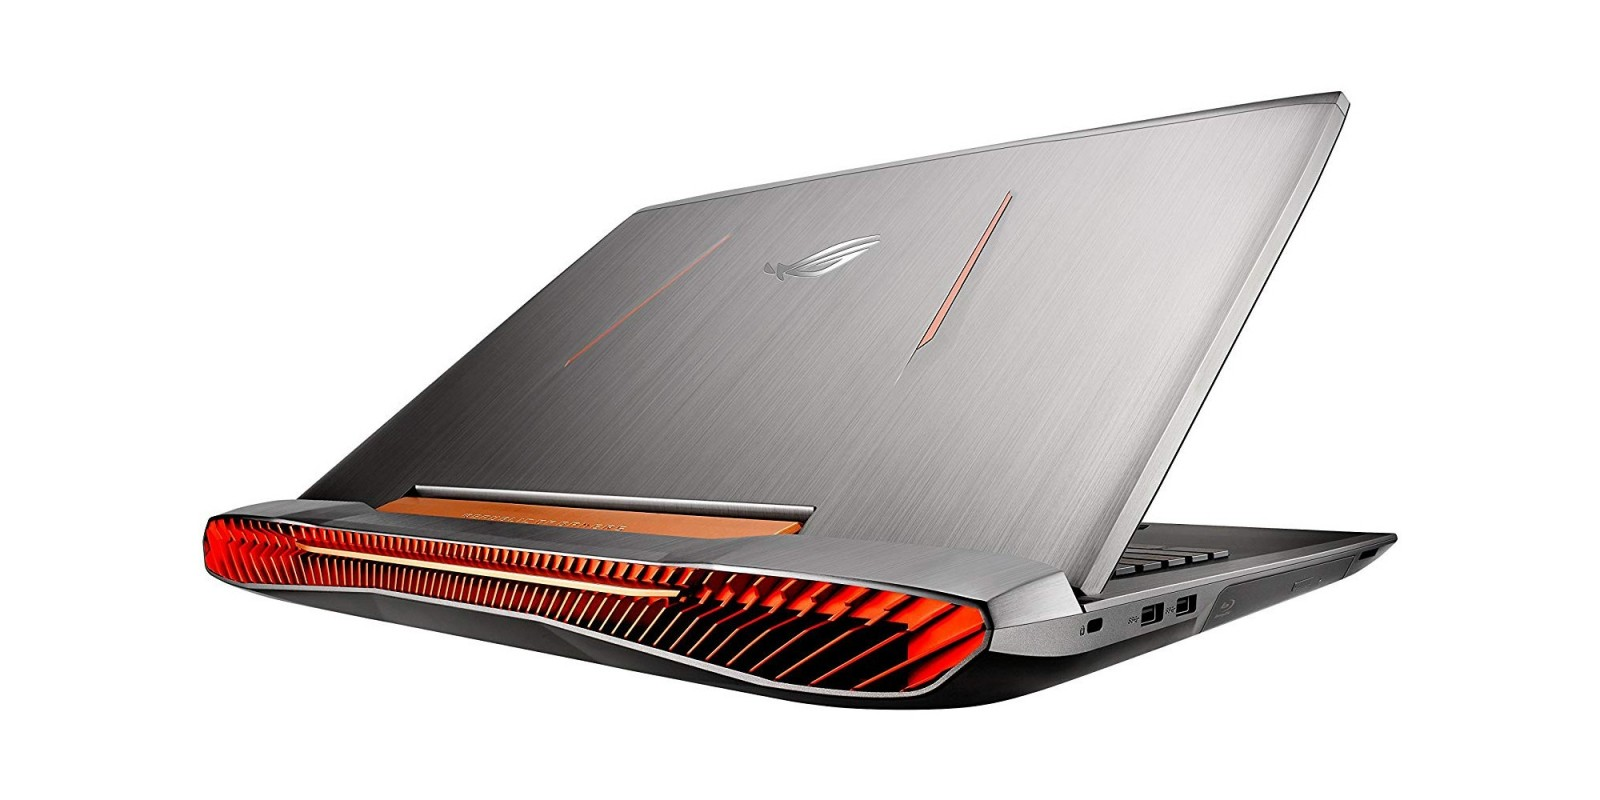 ASUS ROG G752VY-DH72 17-Inch Gaming Laptop Main